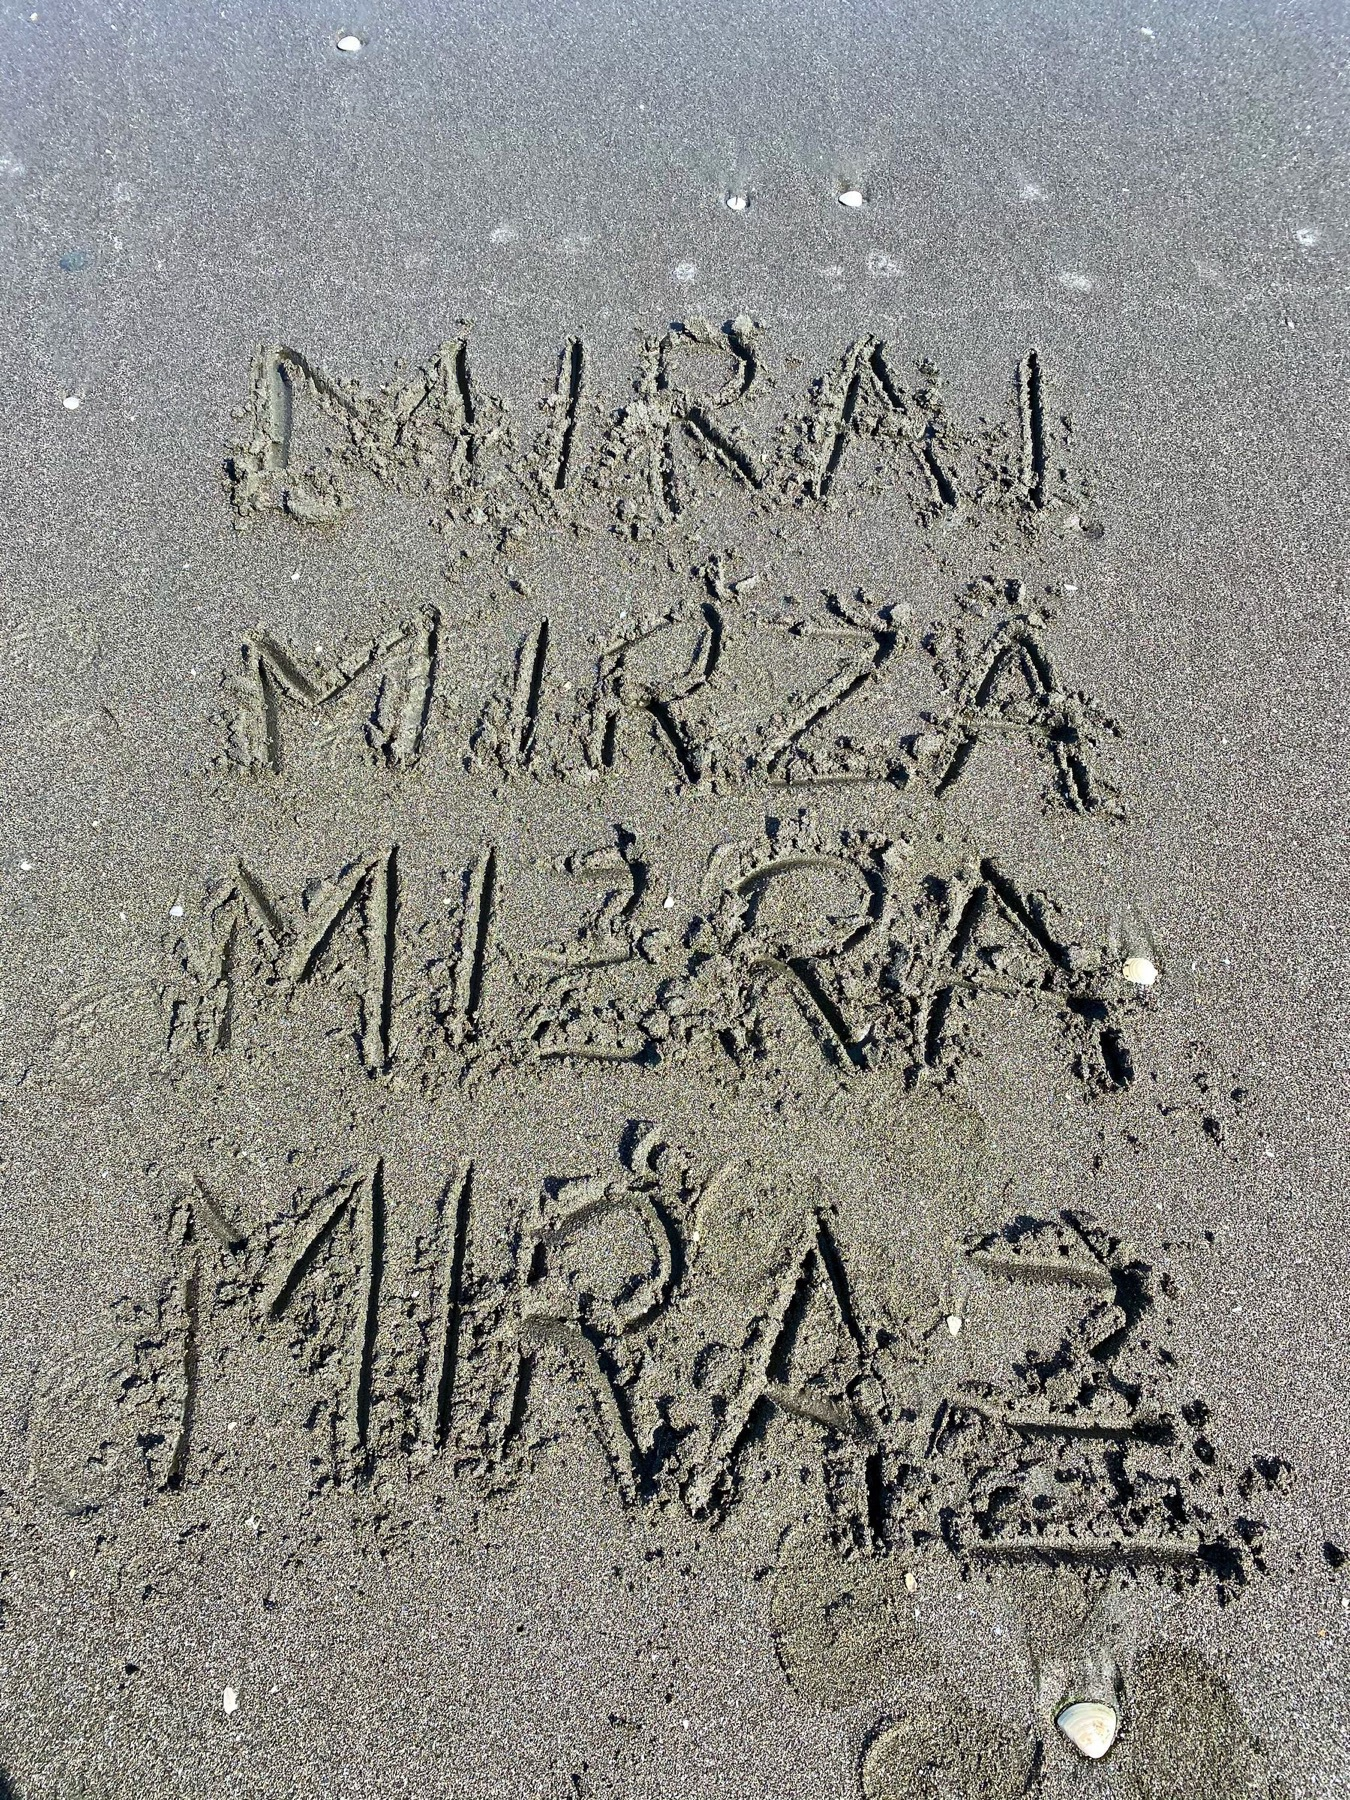 Variations of my name written in sand at the beach.